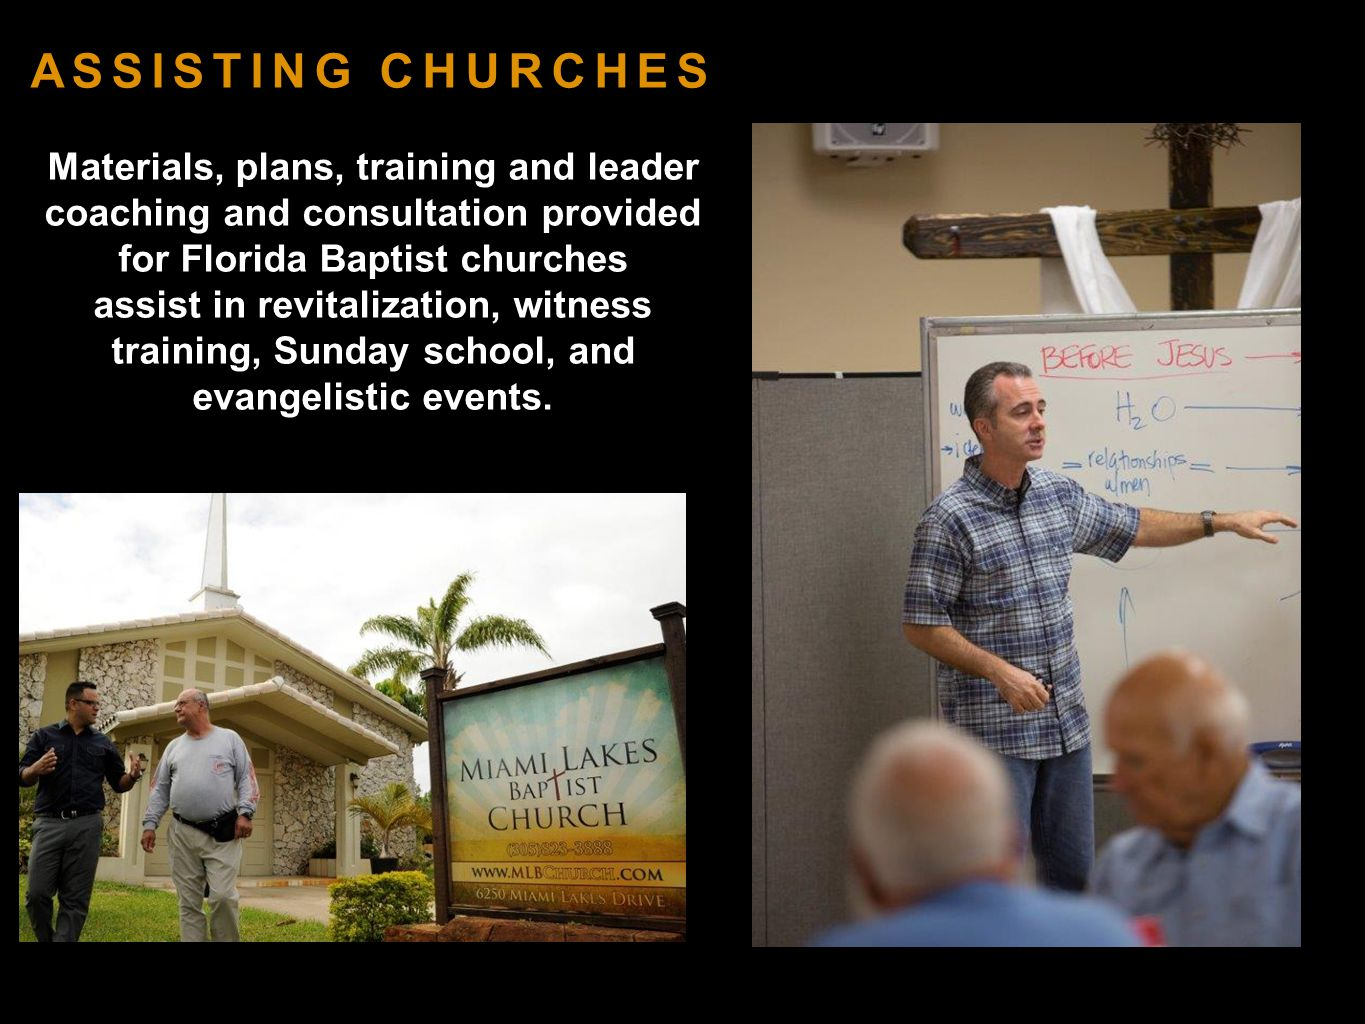 ASSISTING CHURCHES Materials, plans, training and leader coaching and consultation provided for Florida Baptist churches assist in revitalization, witness training, Sunday school, and evangelistic events.